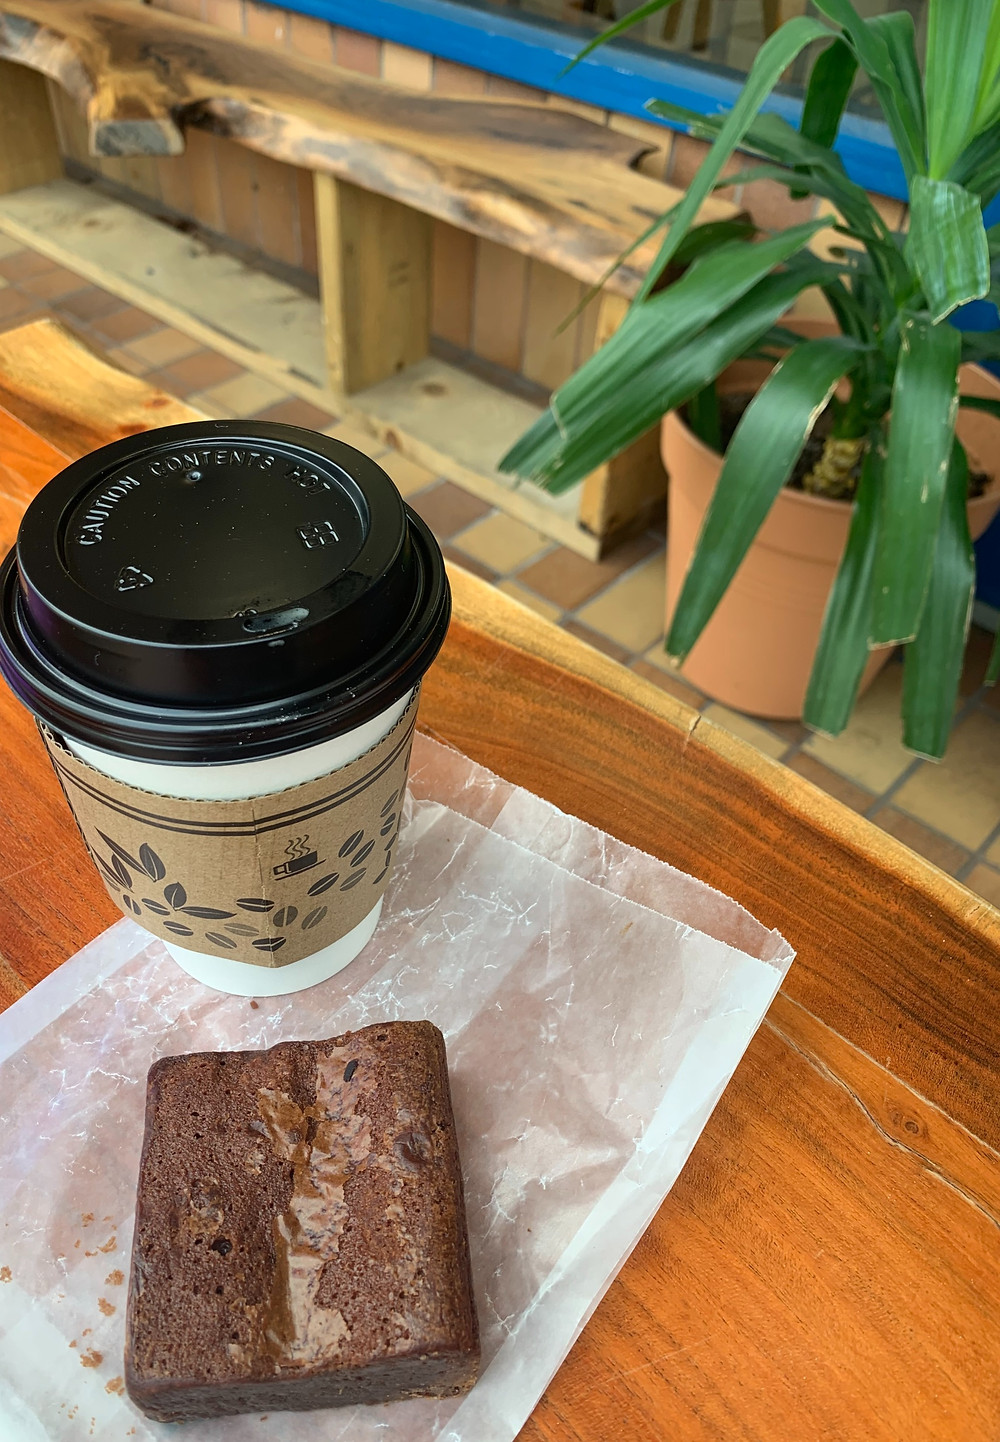 Caravan Cafe & Tea House Toronto coffee and pastry combo deal